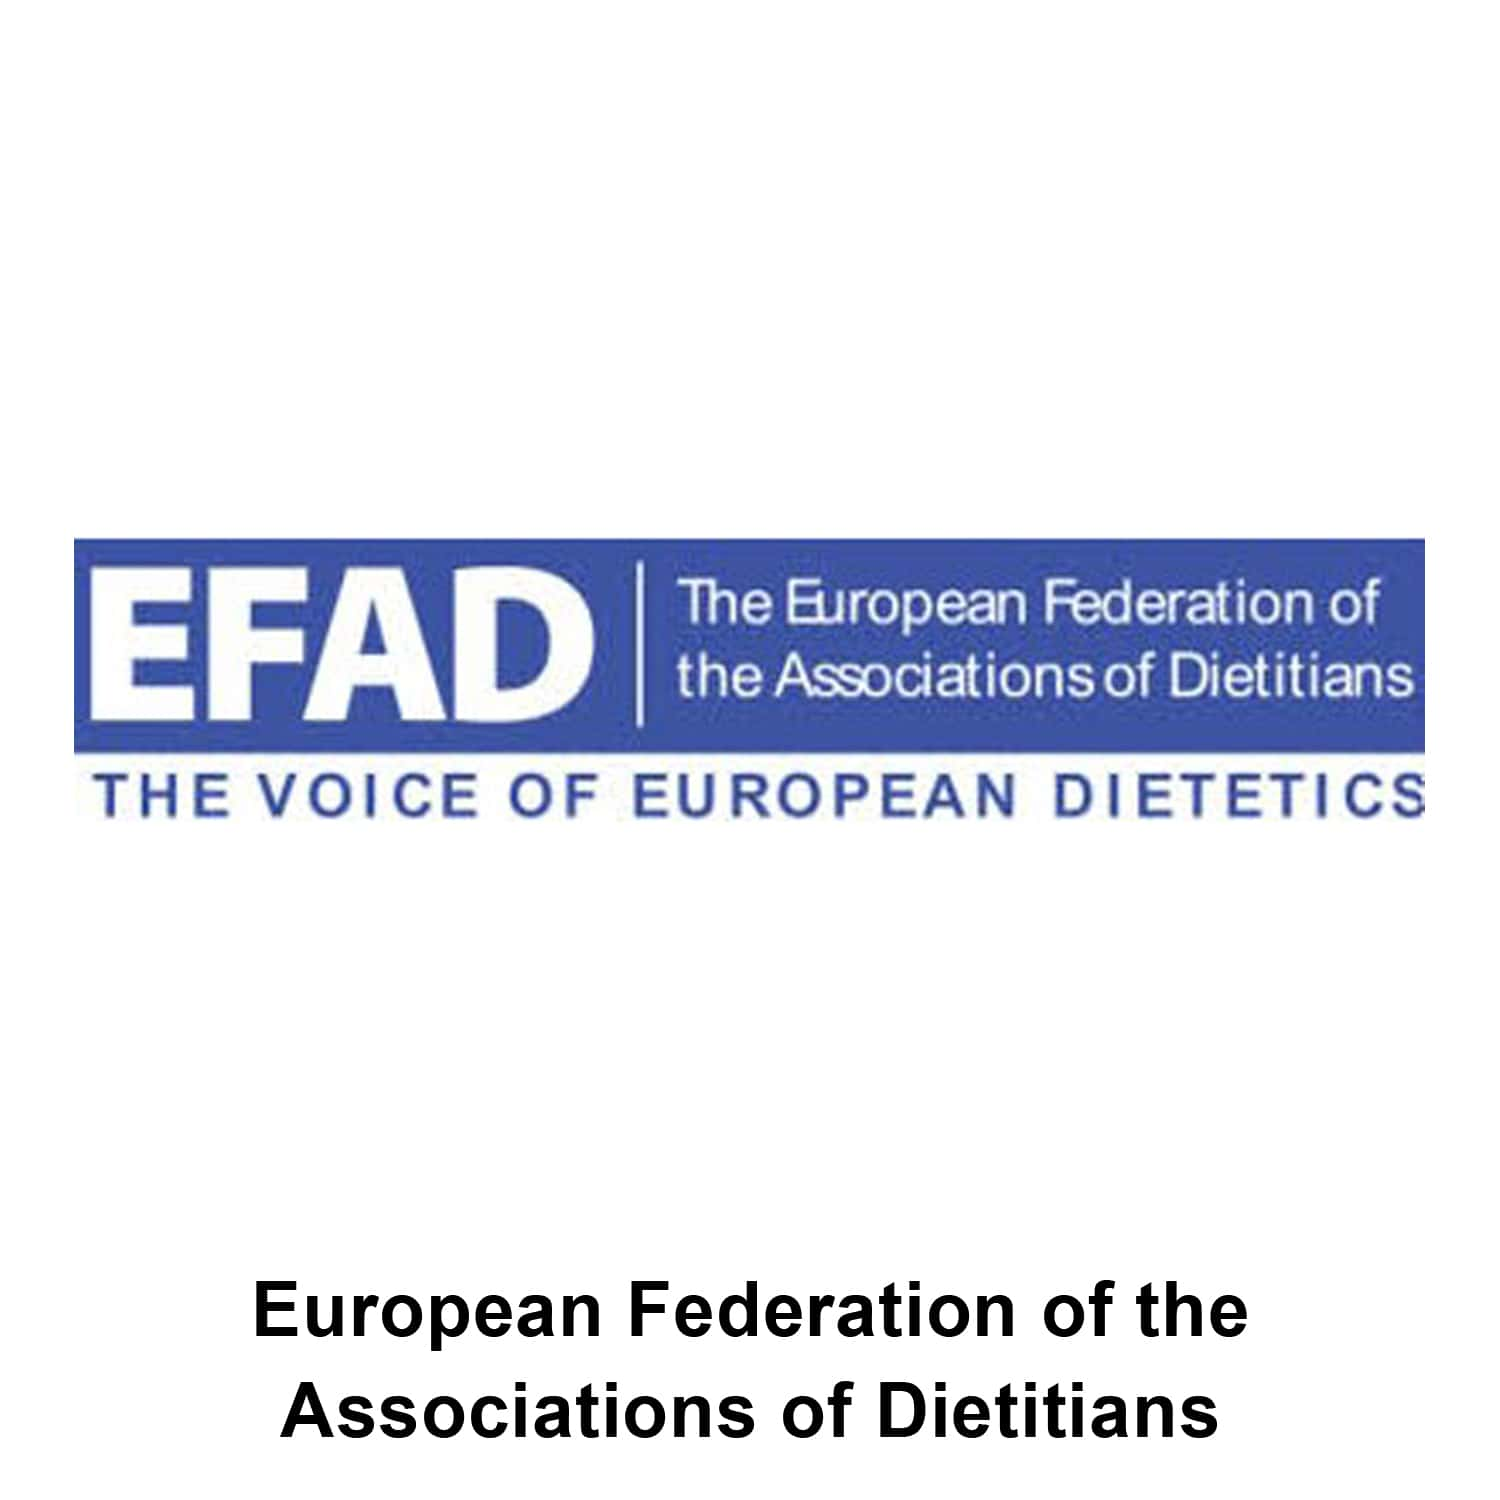 European Federation of the Associations of Dietitians - EFAD